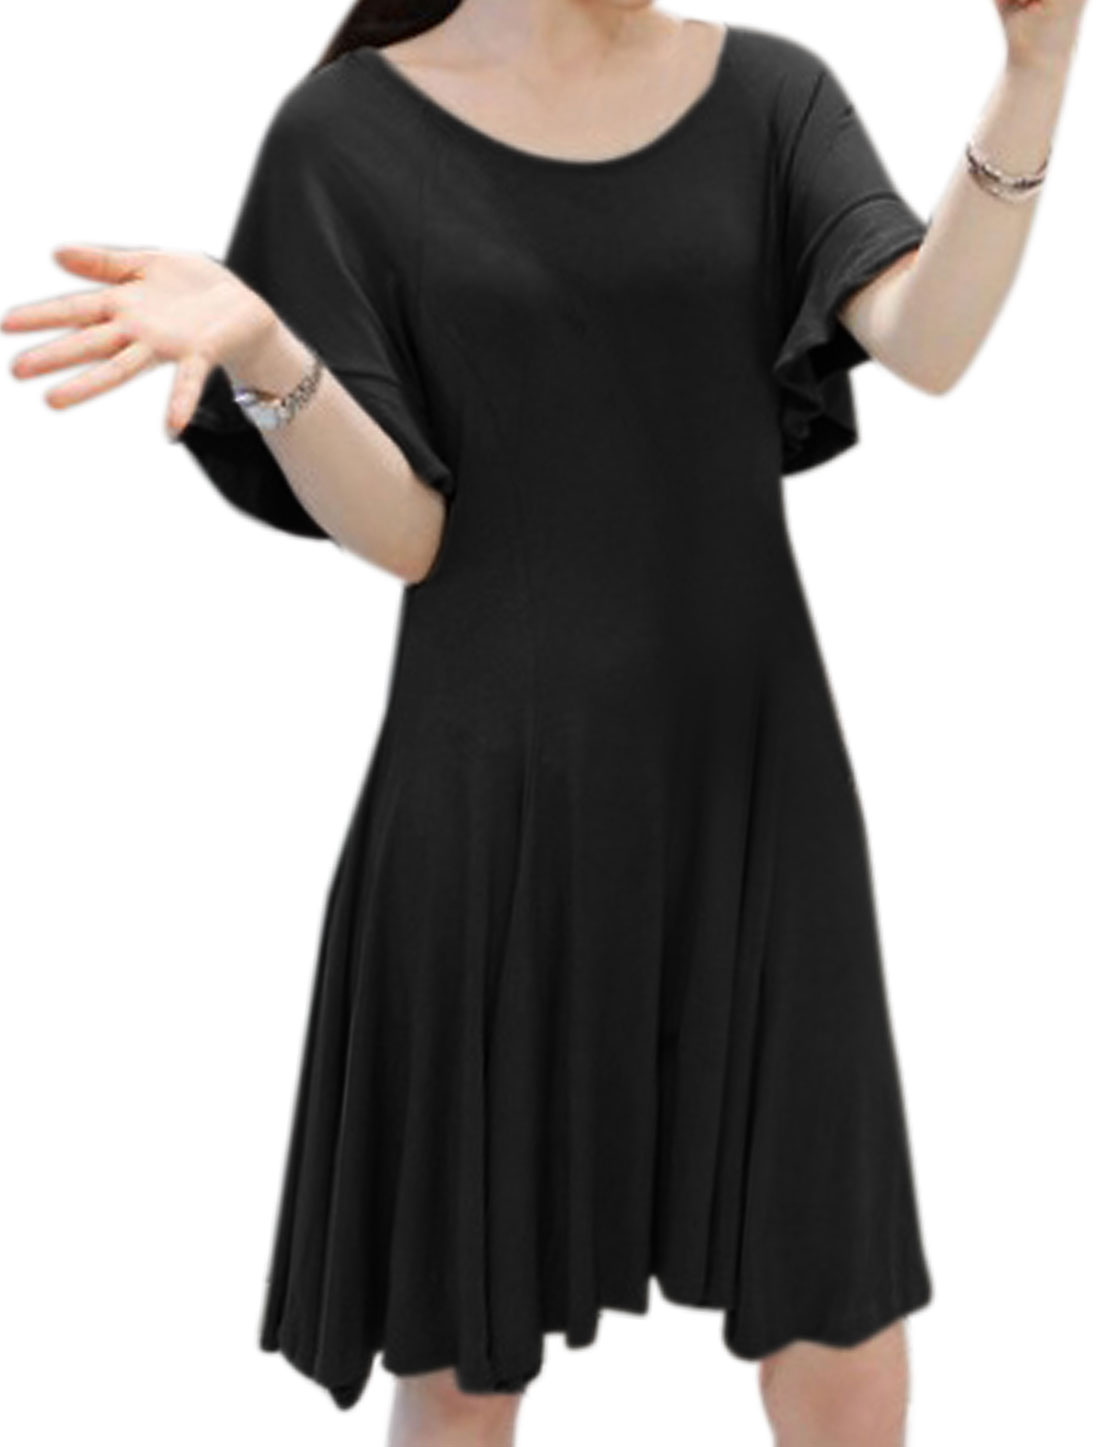 Women Scoop Neck Ruffled Sleeves Fit and Flare Dress Black XS